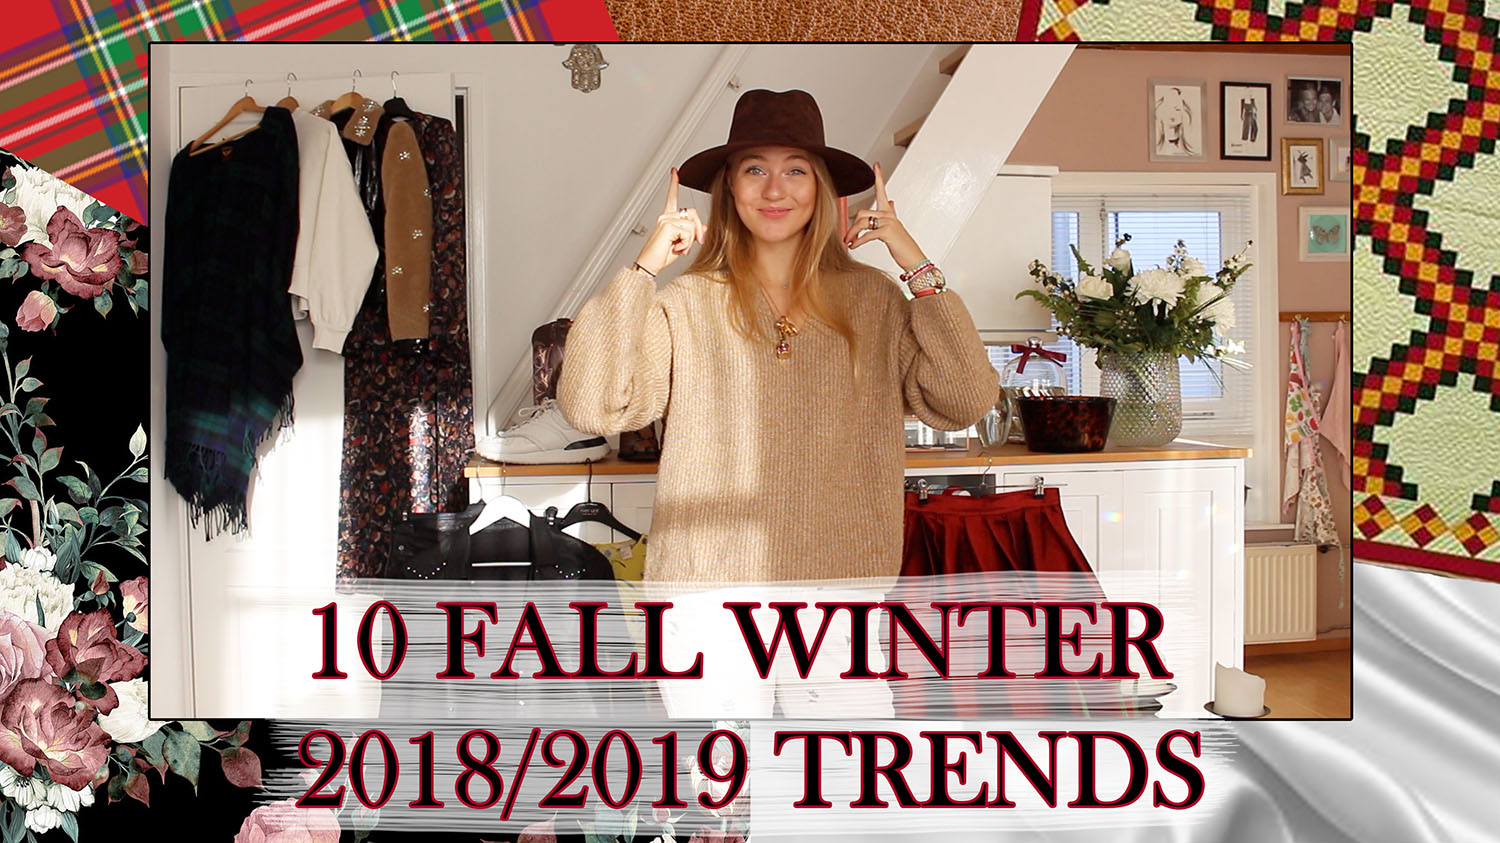 floortjeloves, trend, trends, trend video, fall trends, winter trends, fall winter trends, fall 2018, winter 2018, winter 2019, styling, styling tips